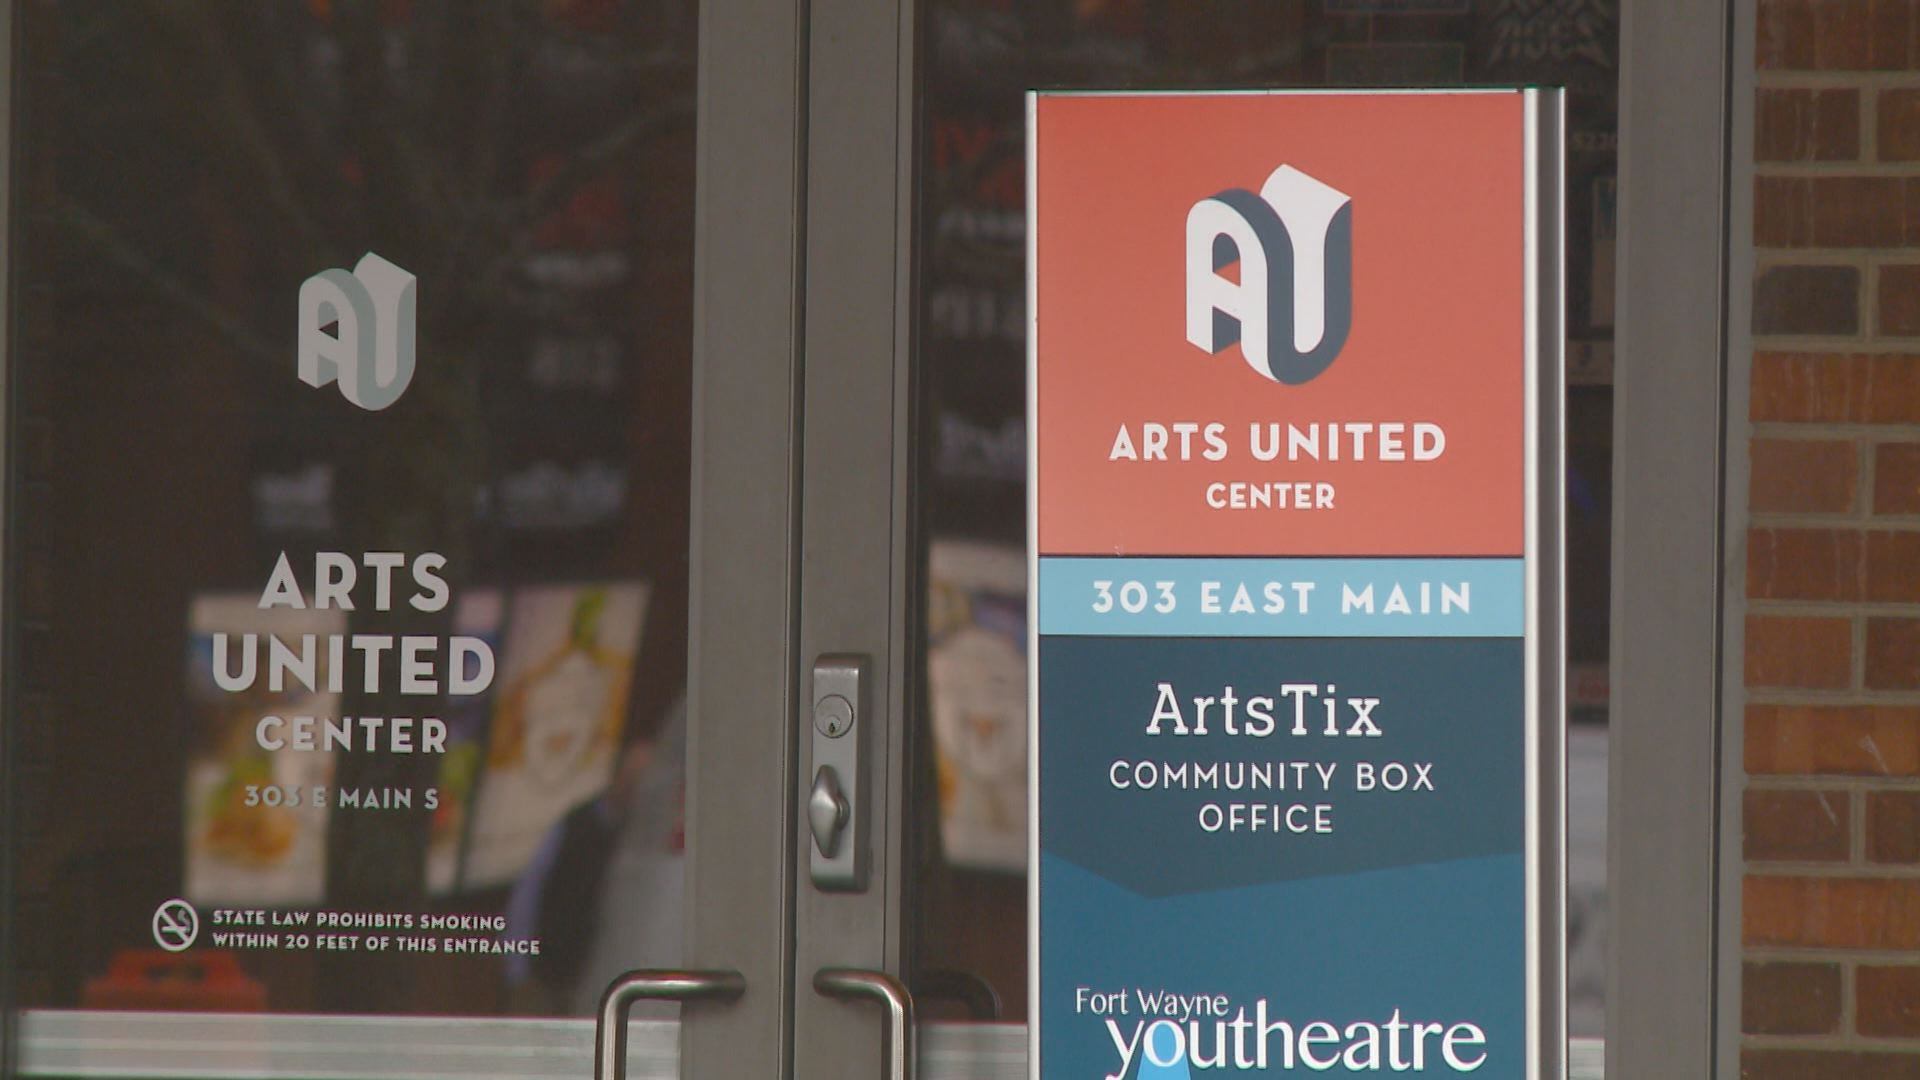 Arts United Center